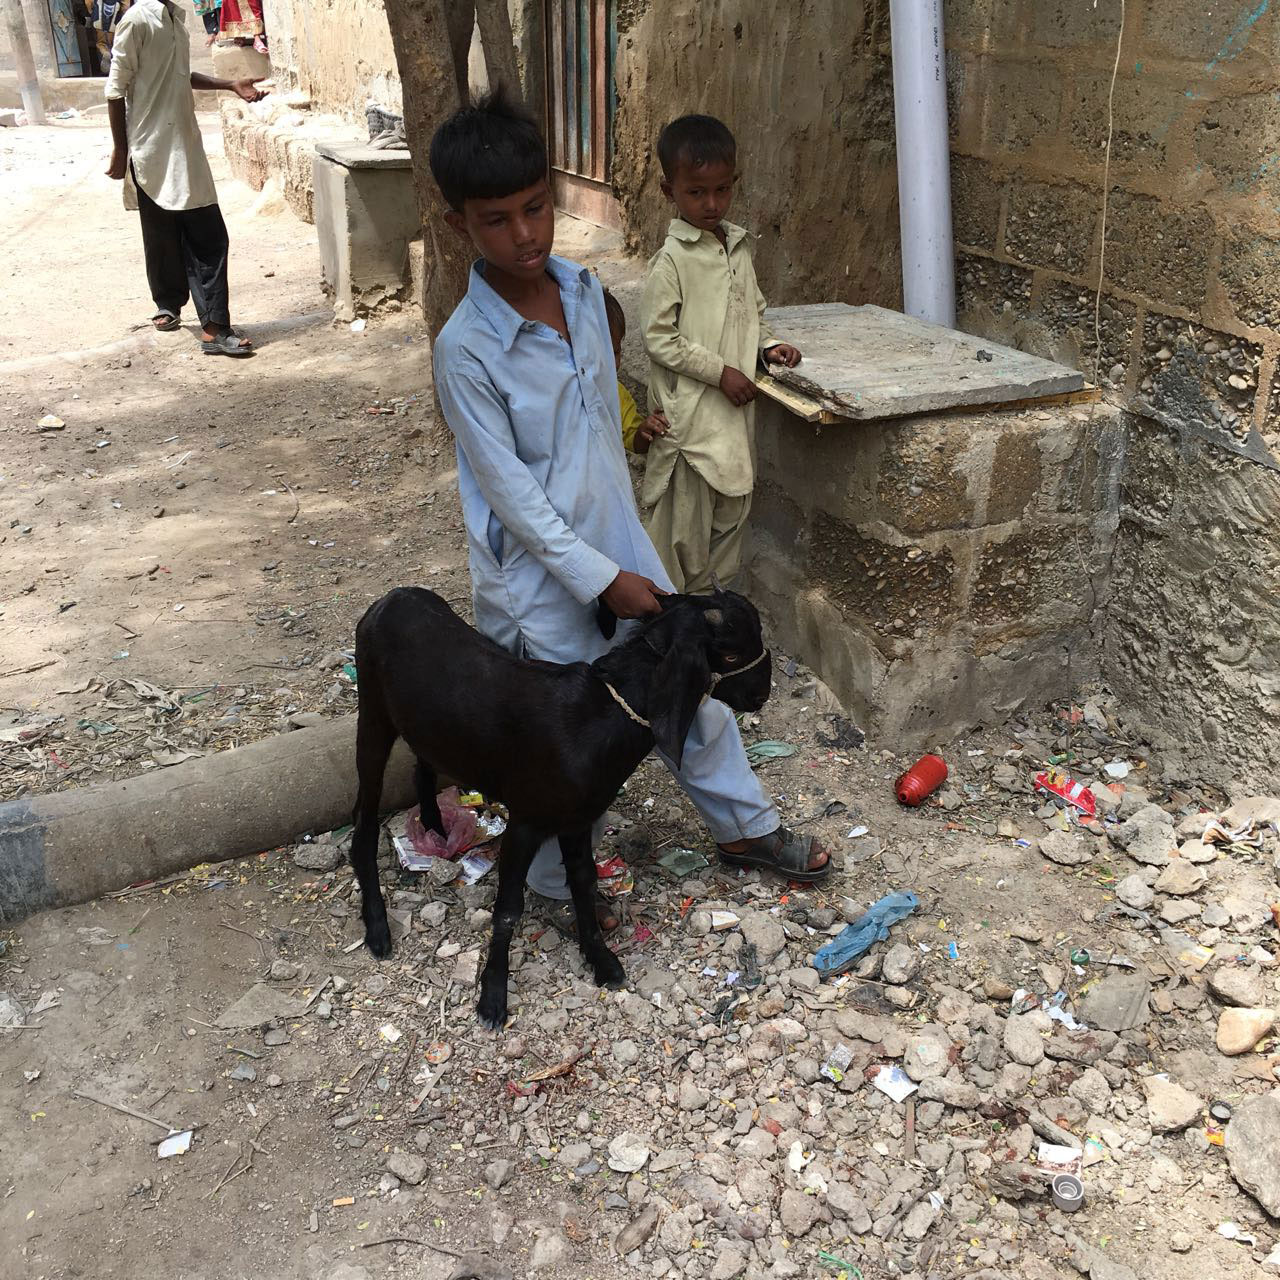 A child walks his pet goat in Karachi's impoverished Arkanabad neighbourhood.